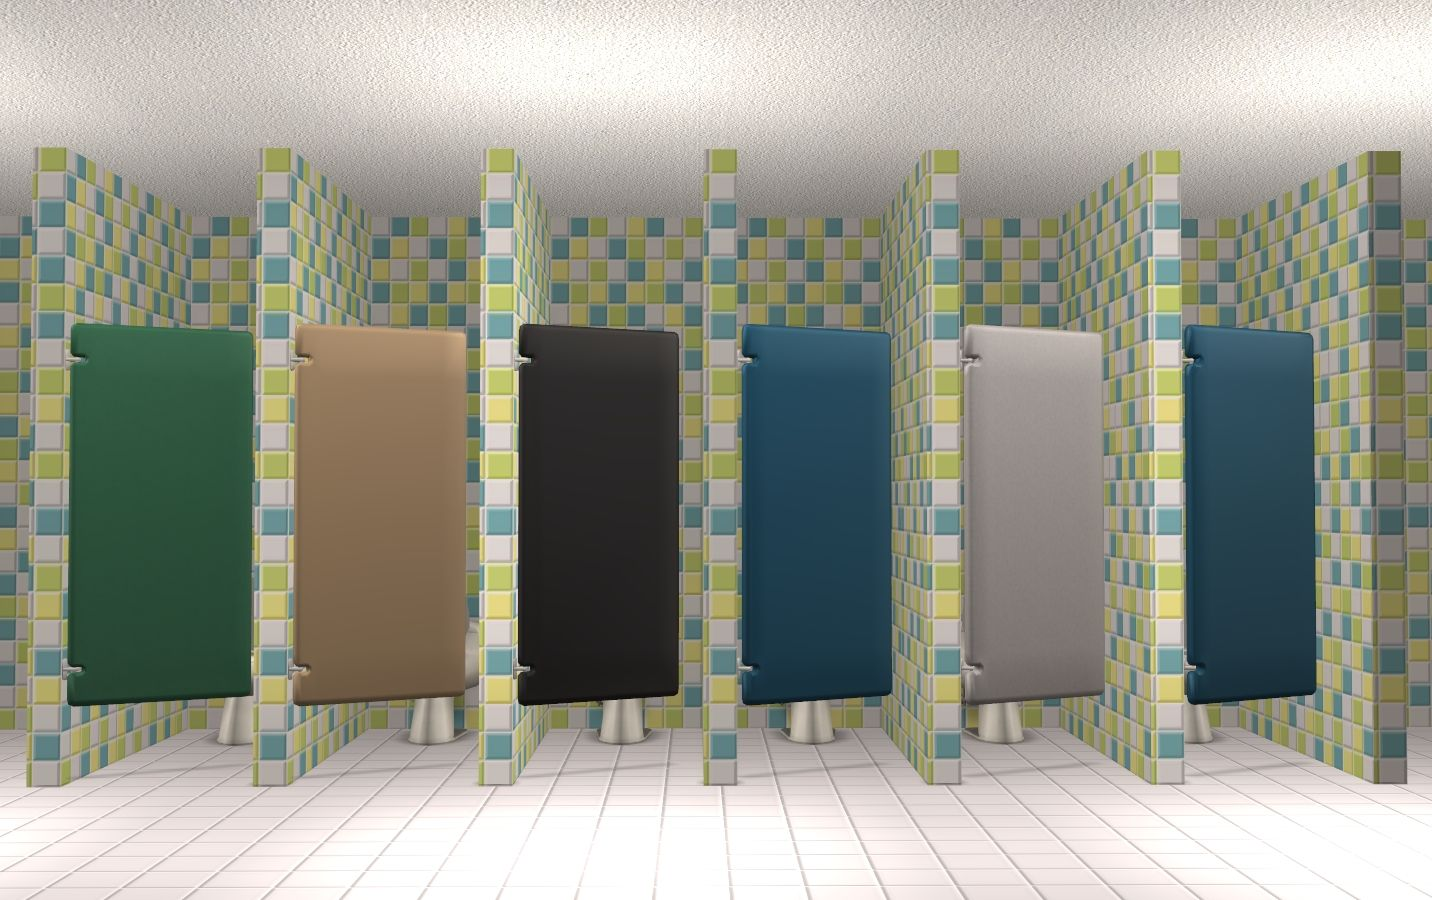 Bathroom Stalls Sims 3 mod the sims - astro stall door | ea recolors and maxis match